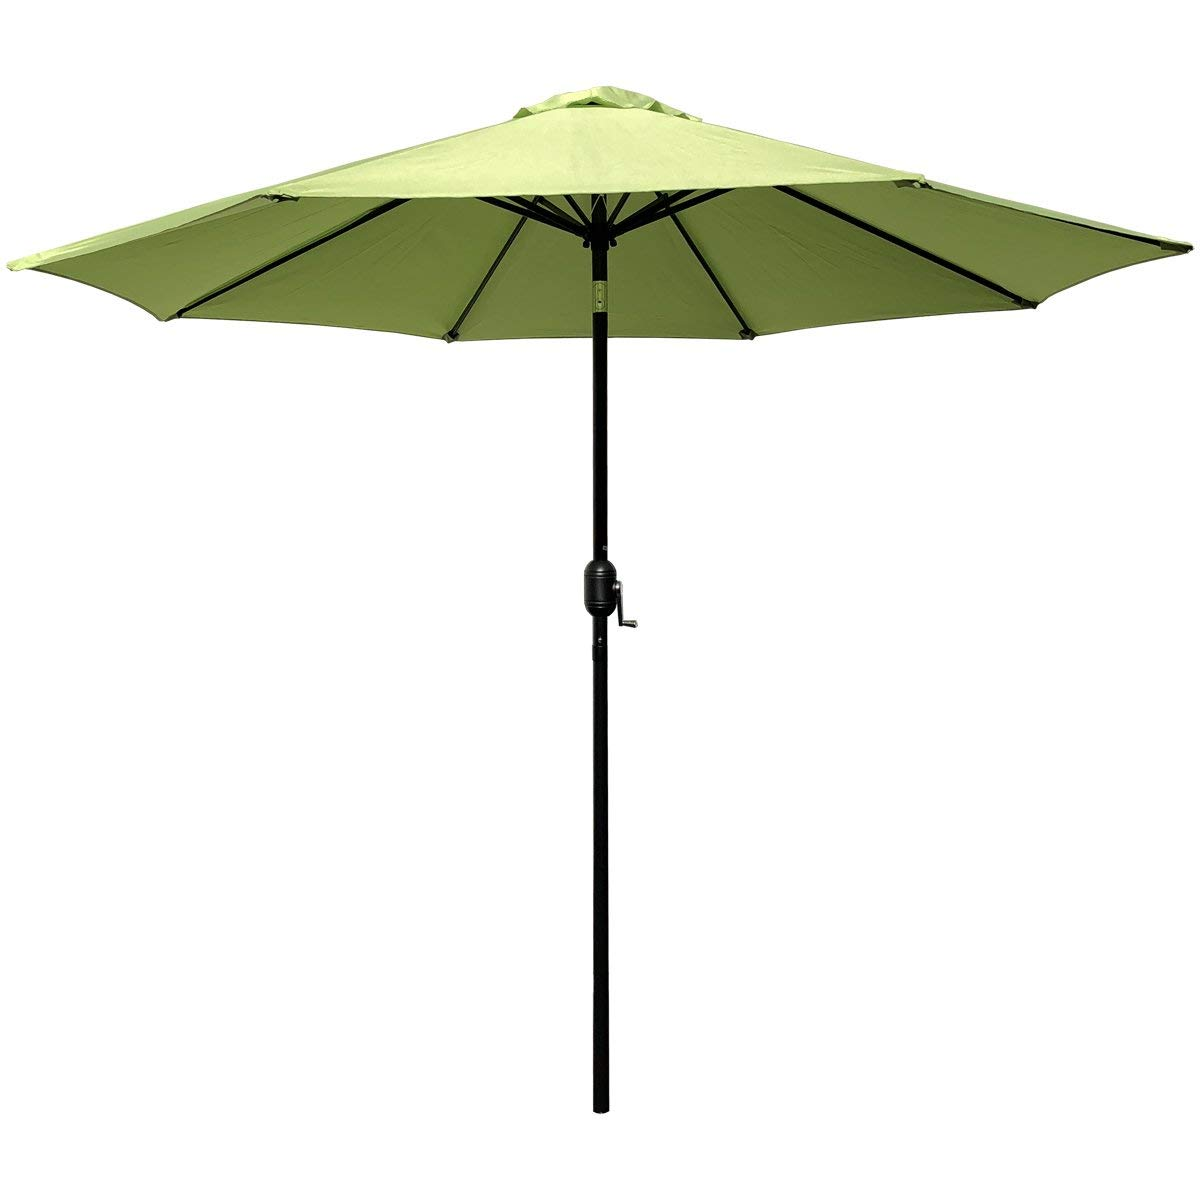 ABBLE Outdoor Patio Umbrella 9 Ft with Tilt and Crank, Weather Resistant, UV Protective Umbrella, Durable, 8 Sturdy Steel Ribs, Market Outdoor Table Umbrella, Lime Green